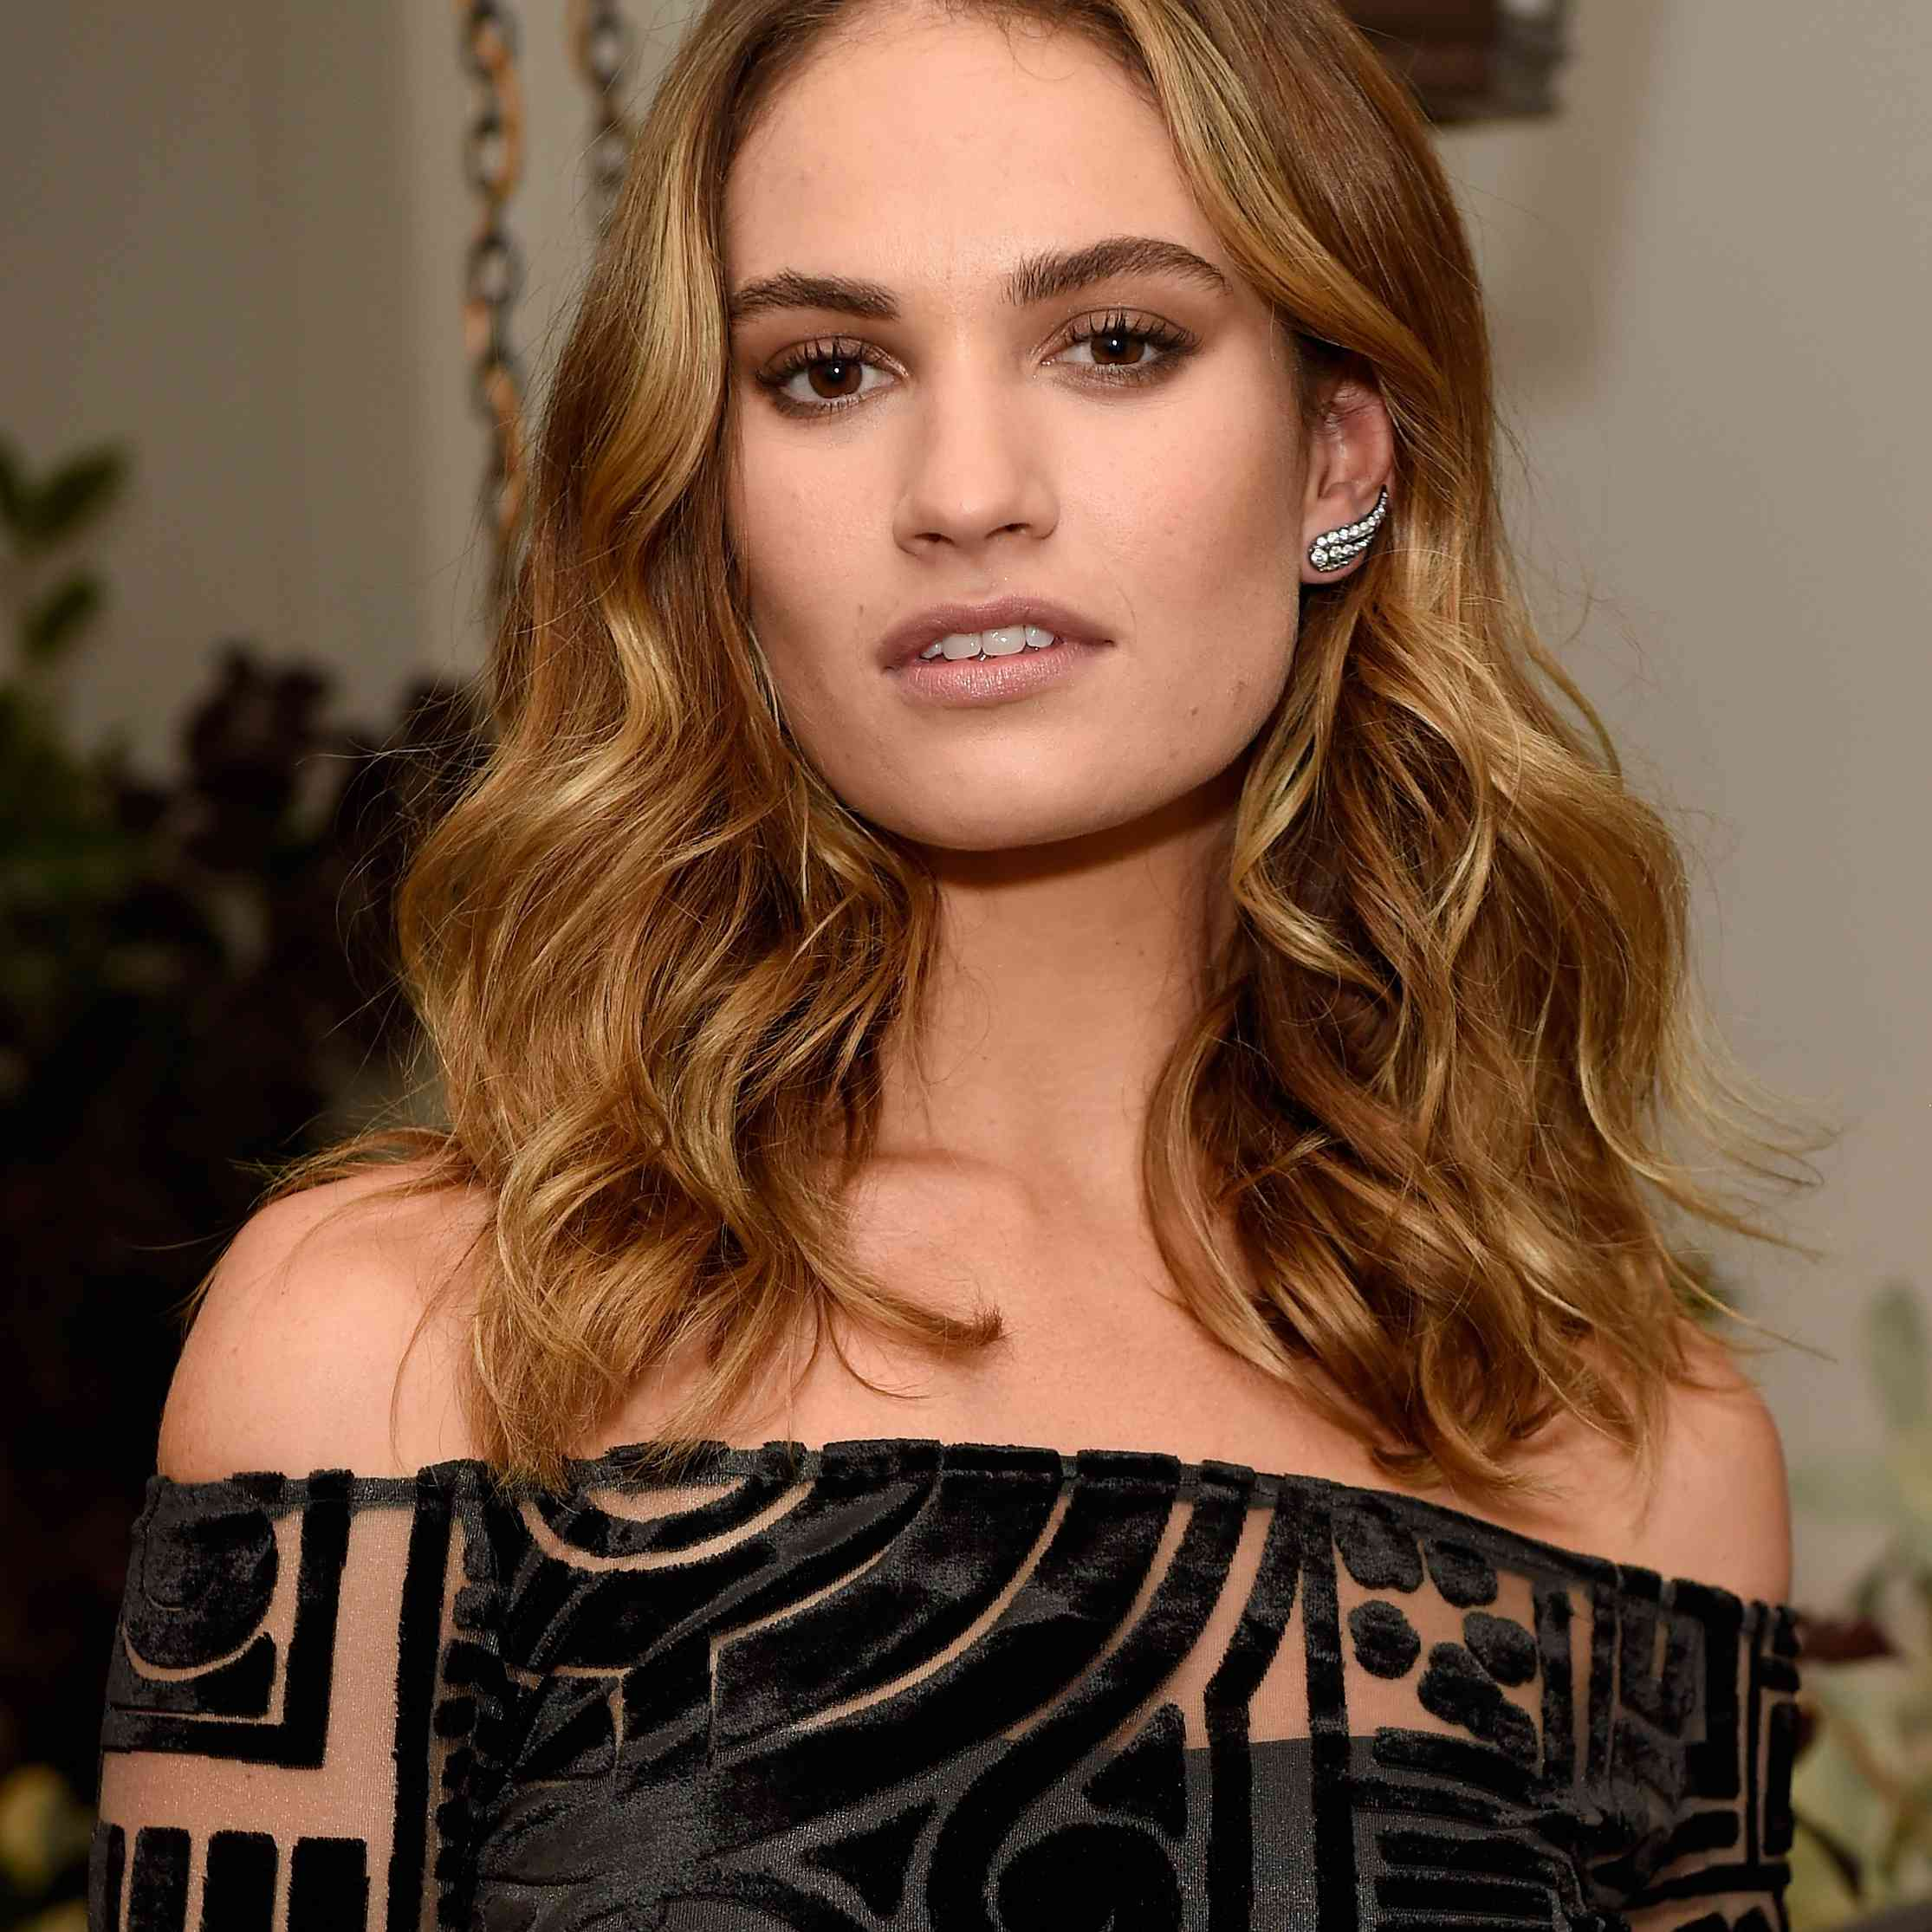 Lily James in black top